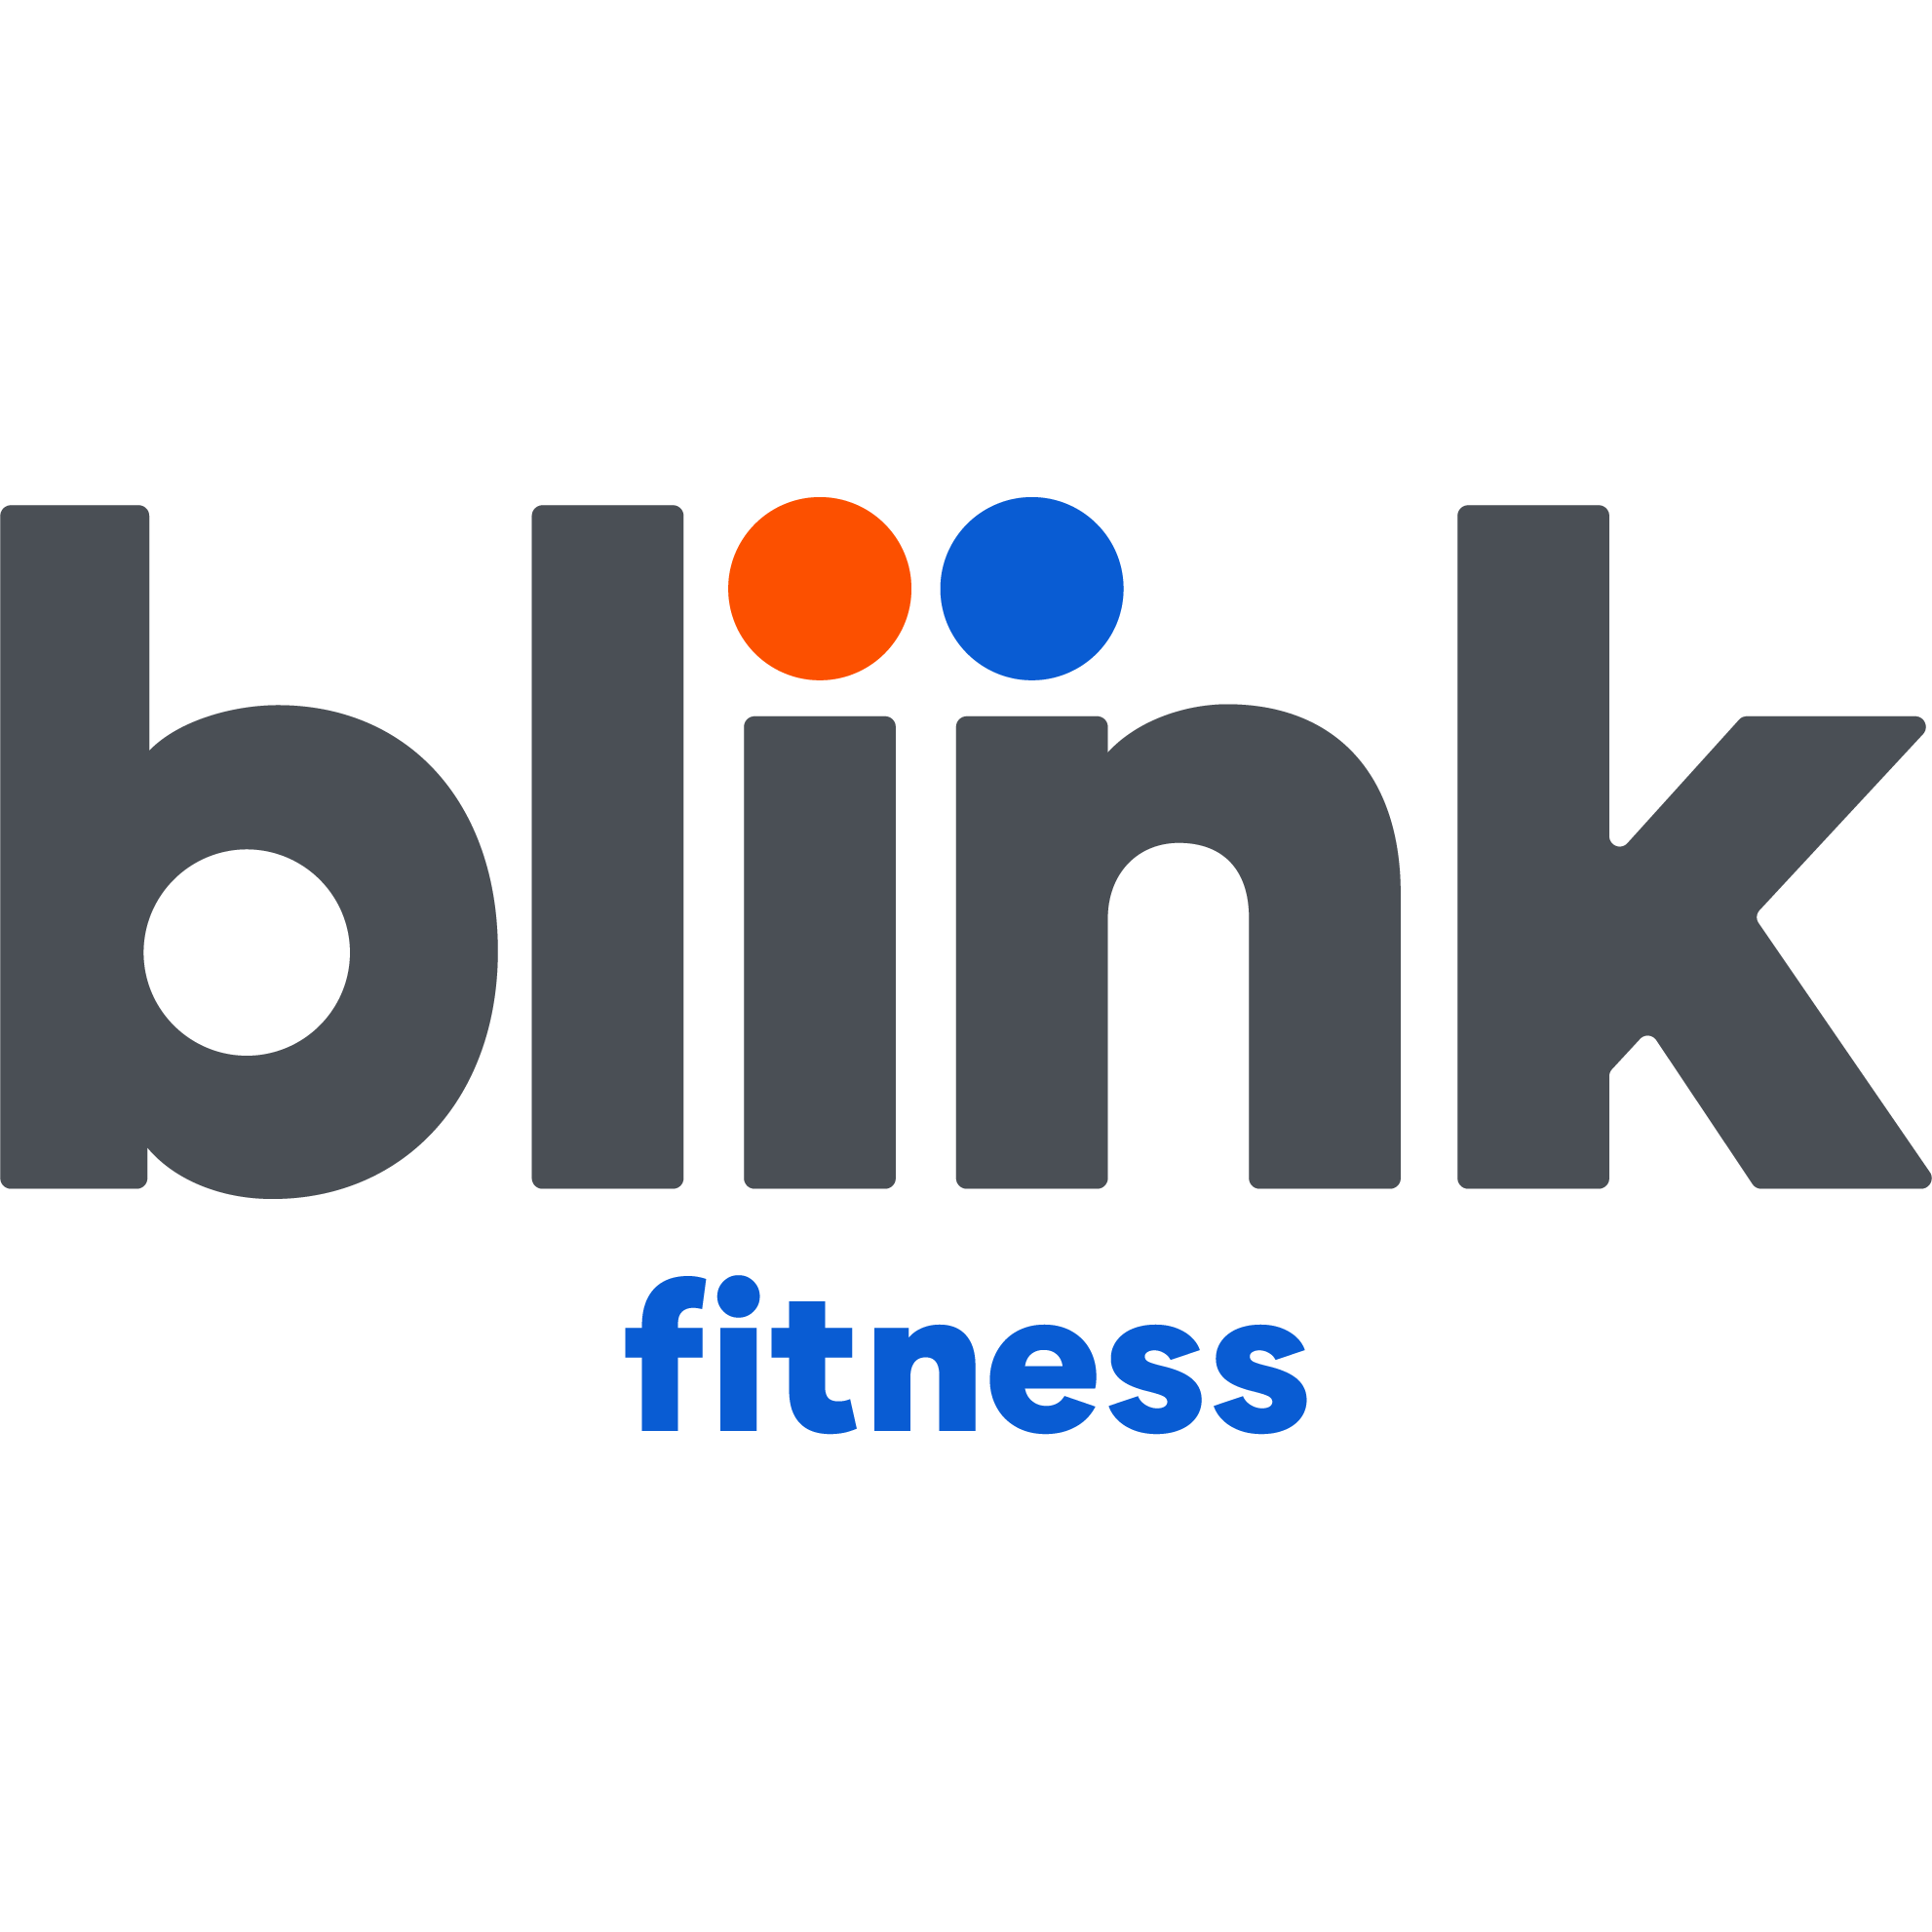 Blink Watts Gym At 2450 East Century Blvd Los Angeles Ca Blink Fitness